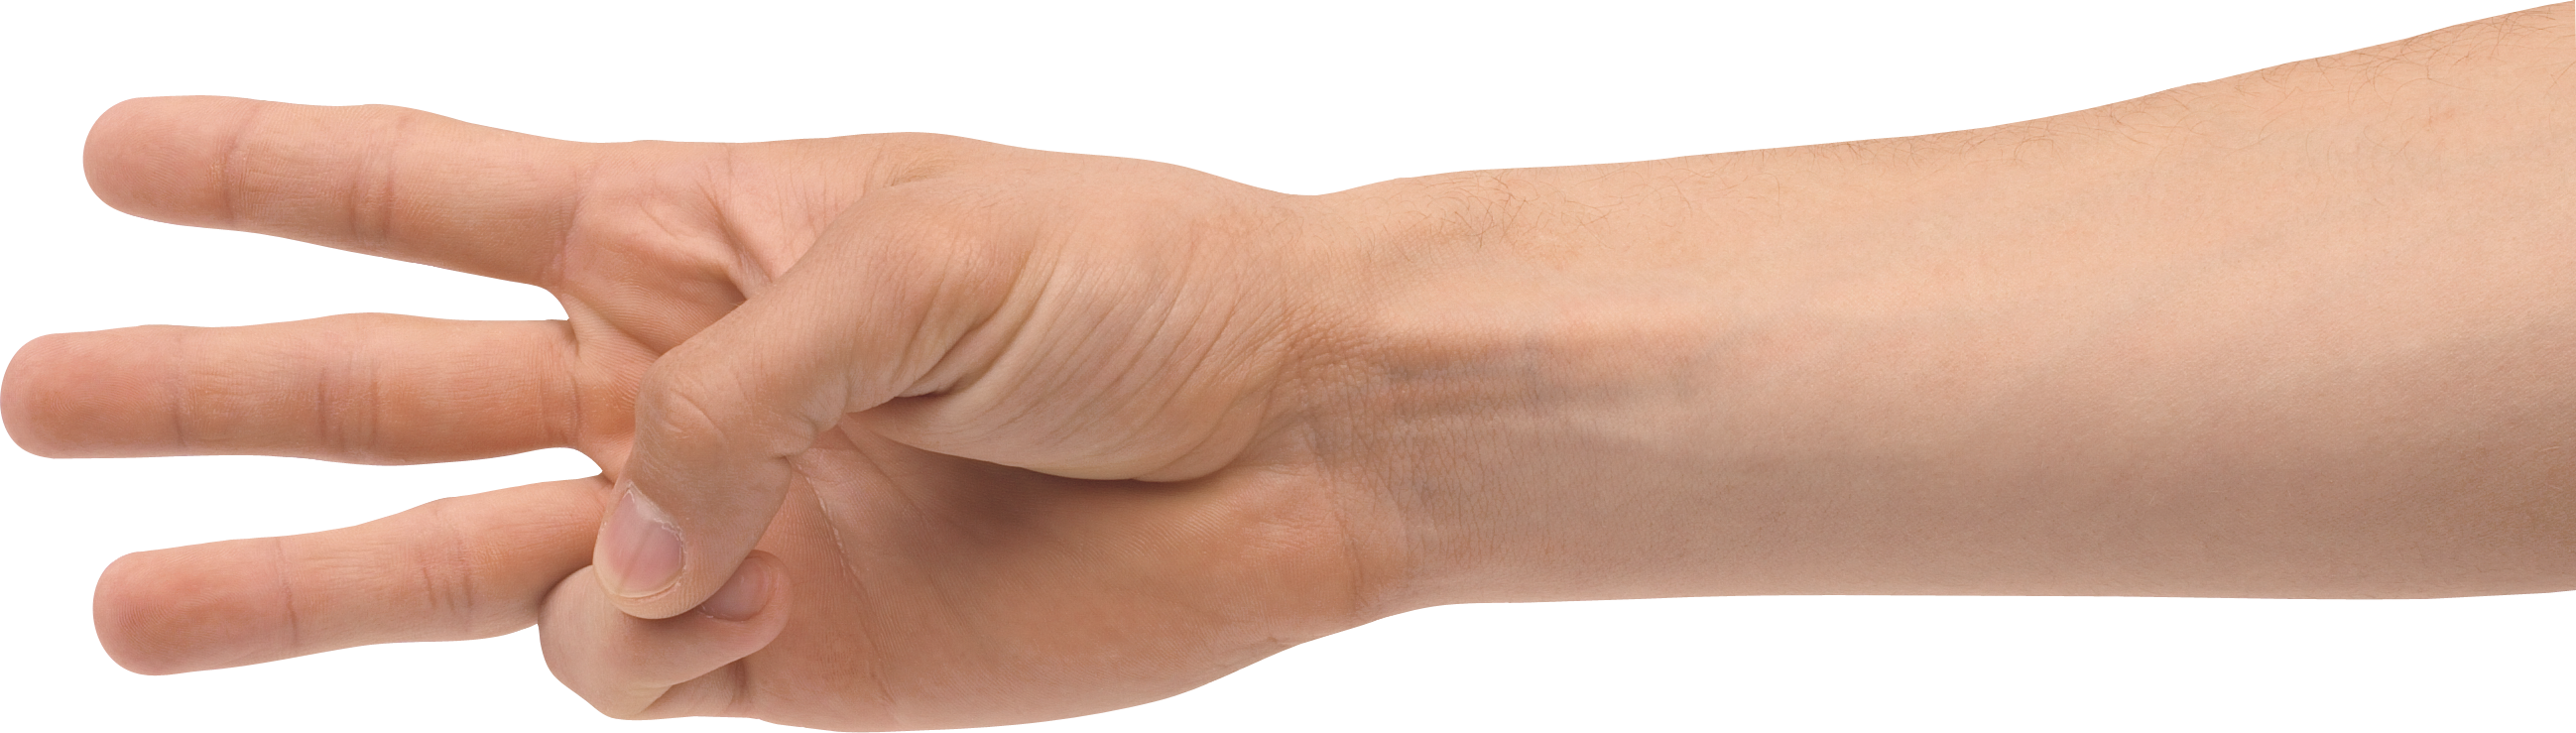 banner transparent Three finger hand png. Hands clipart forearm